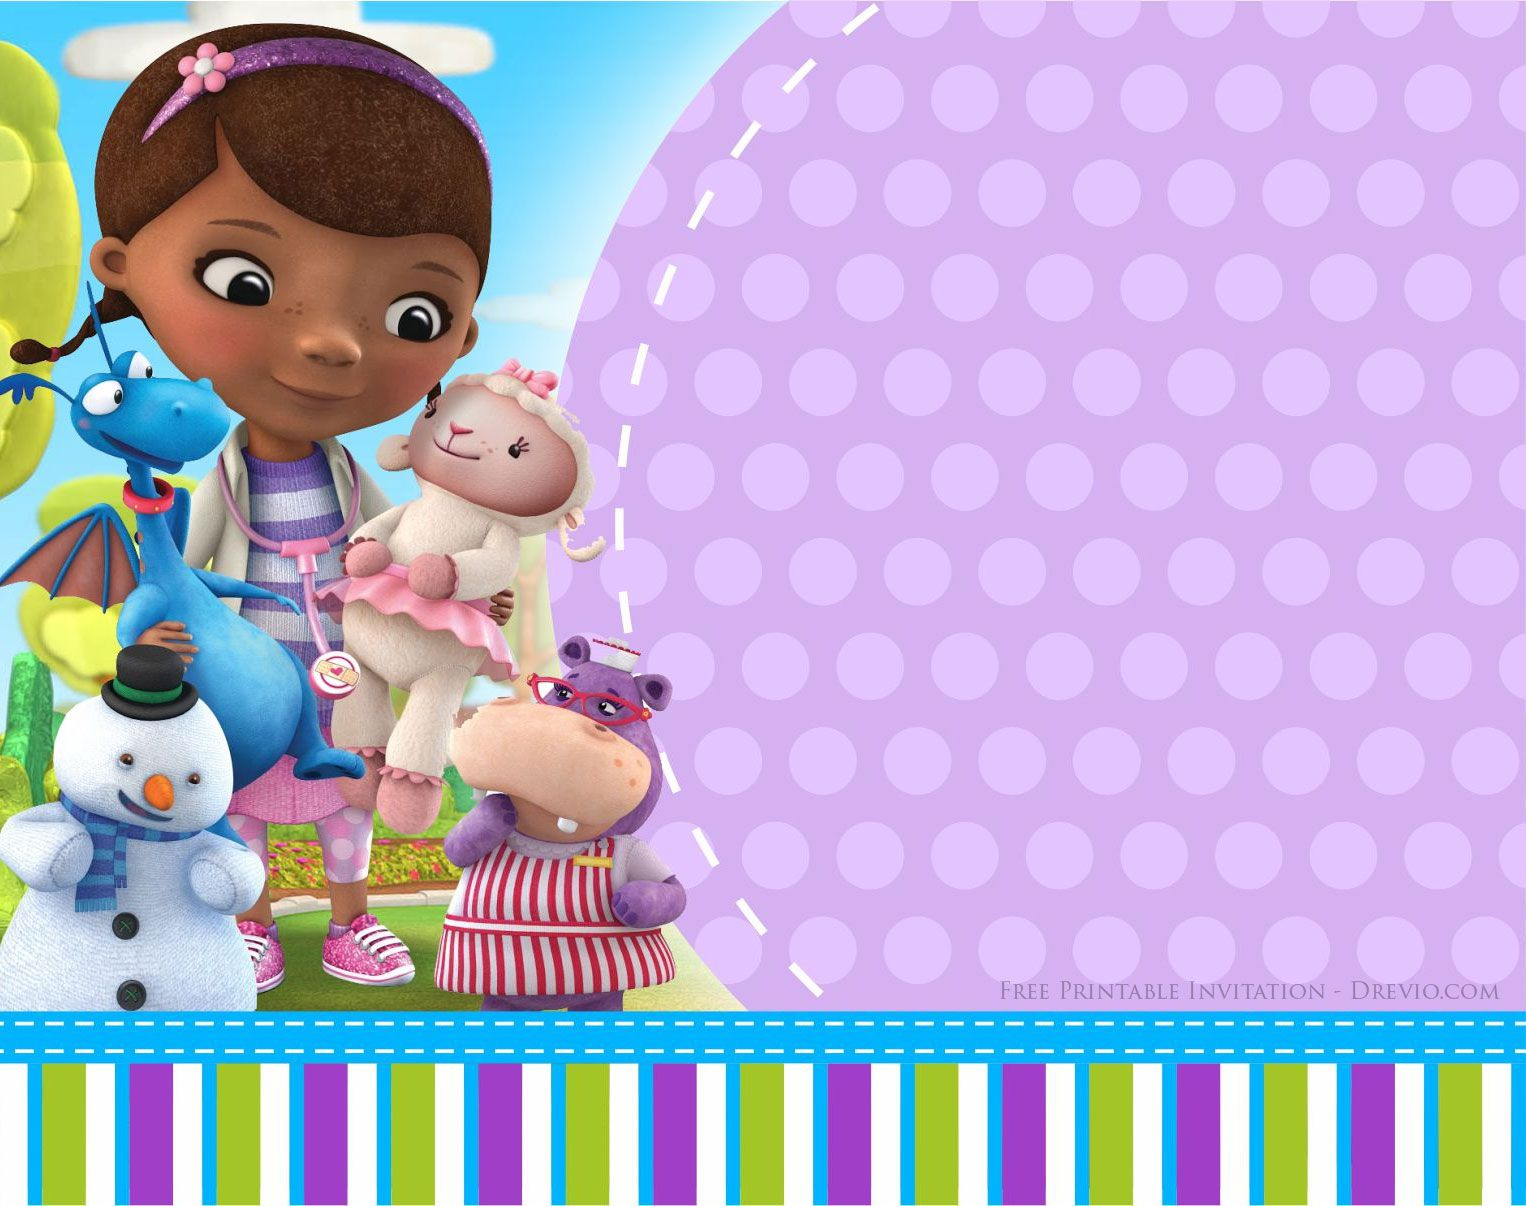 Doc Mcstuffins Birthday Invitation Party Printables Doc inside dimensions 1526 X 1206